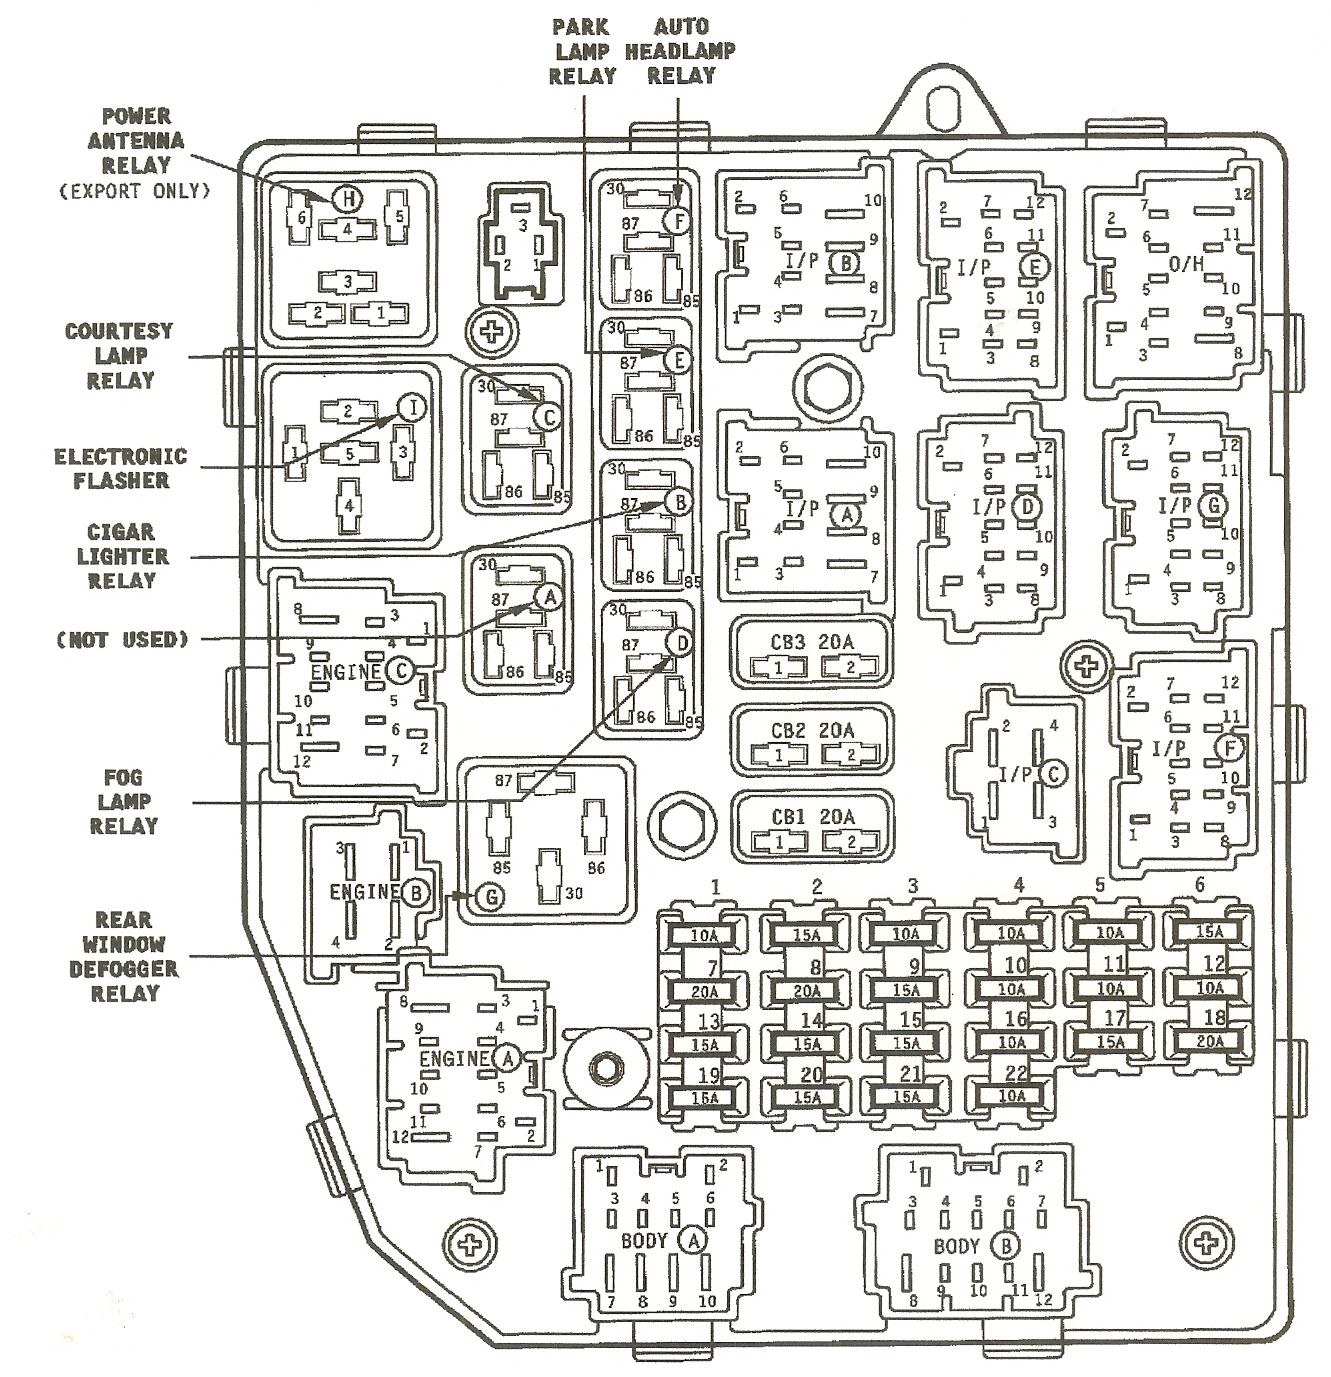 2005 jeep grand cherokee laredo interior fuse box diagram